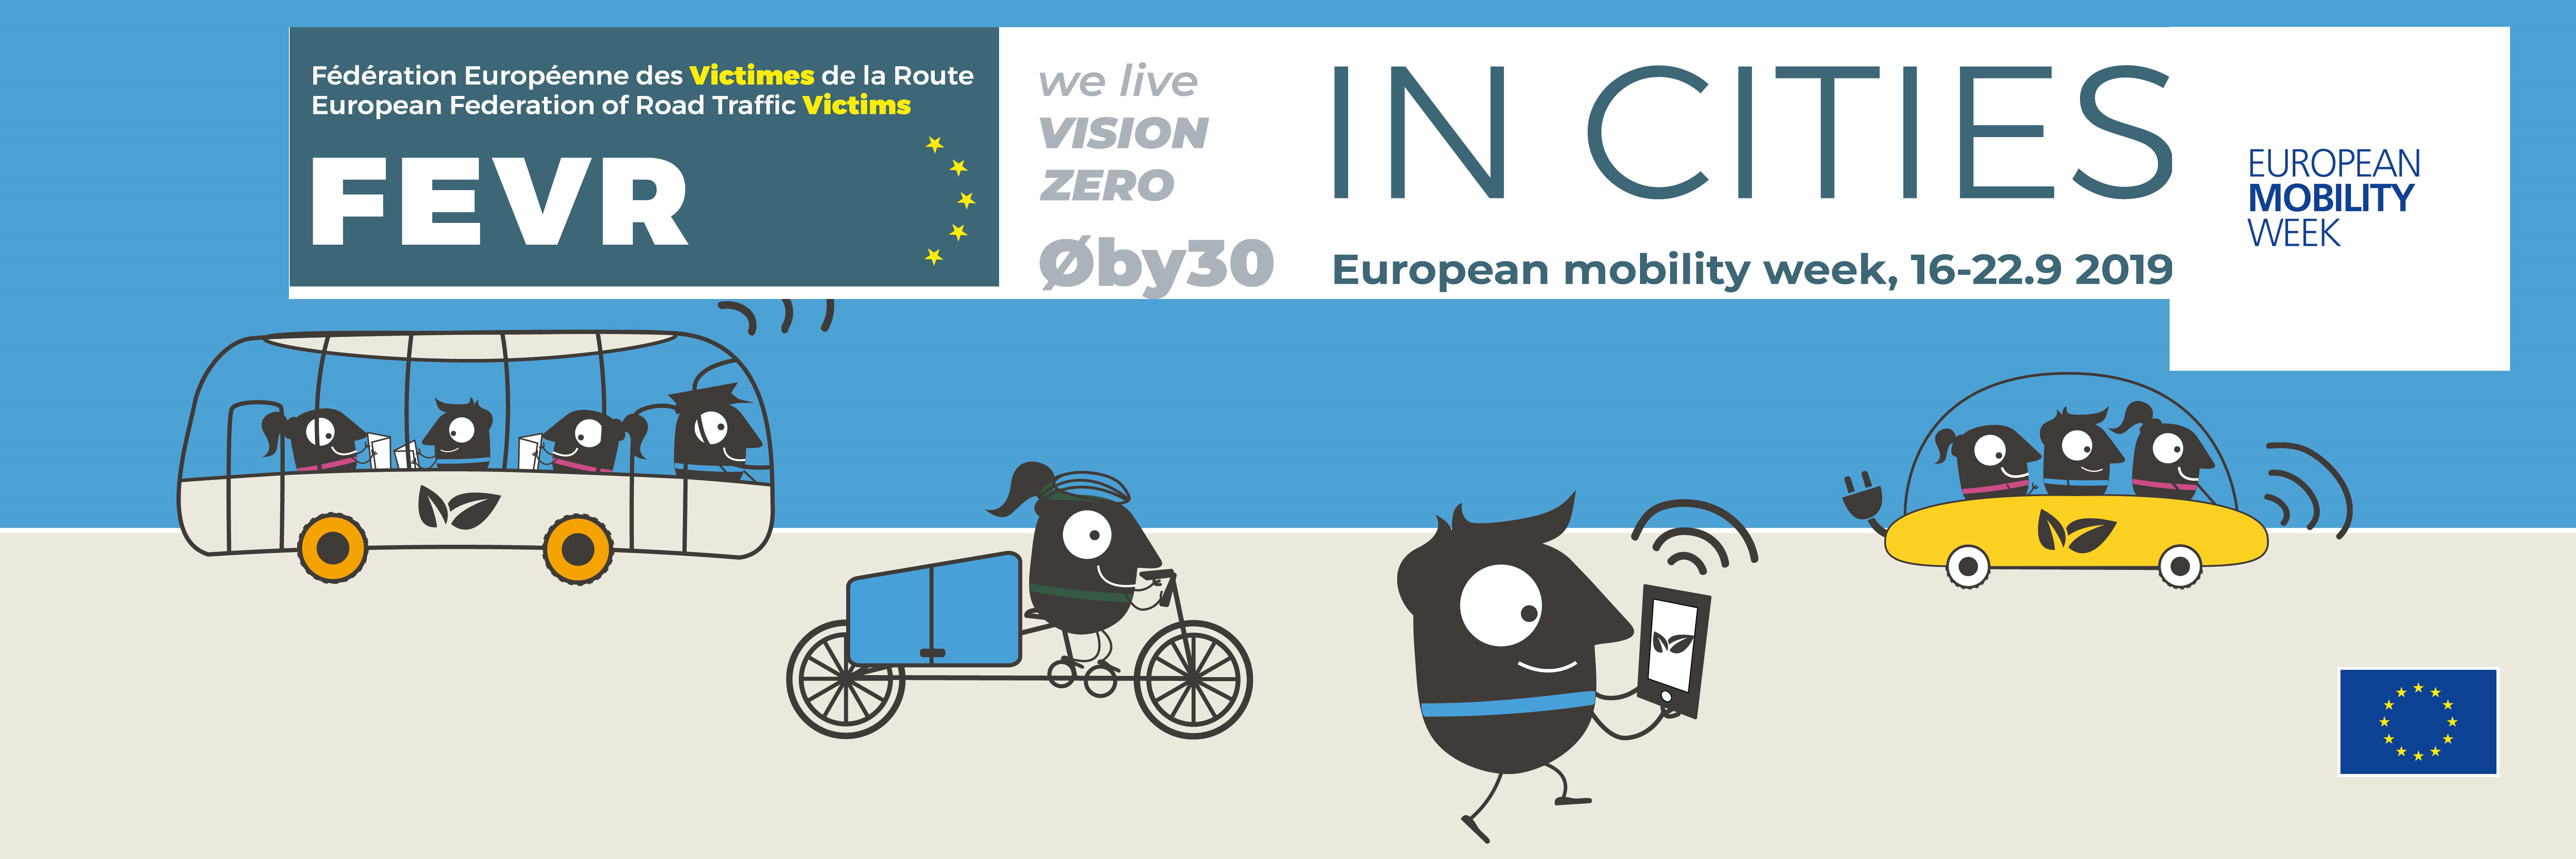 The project starts 3 weeks ahead of the European Mobility Week